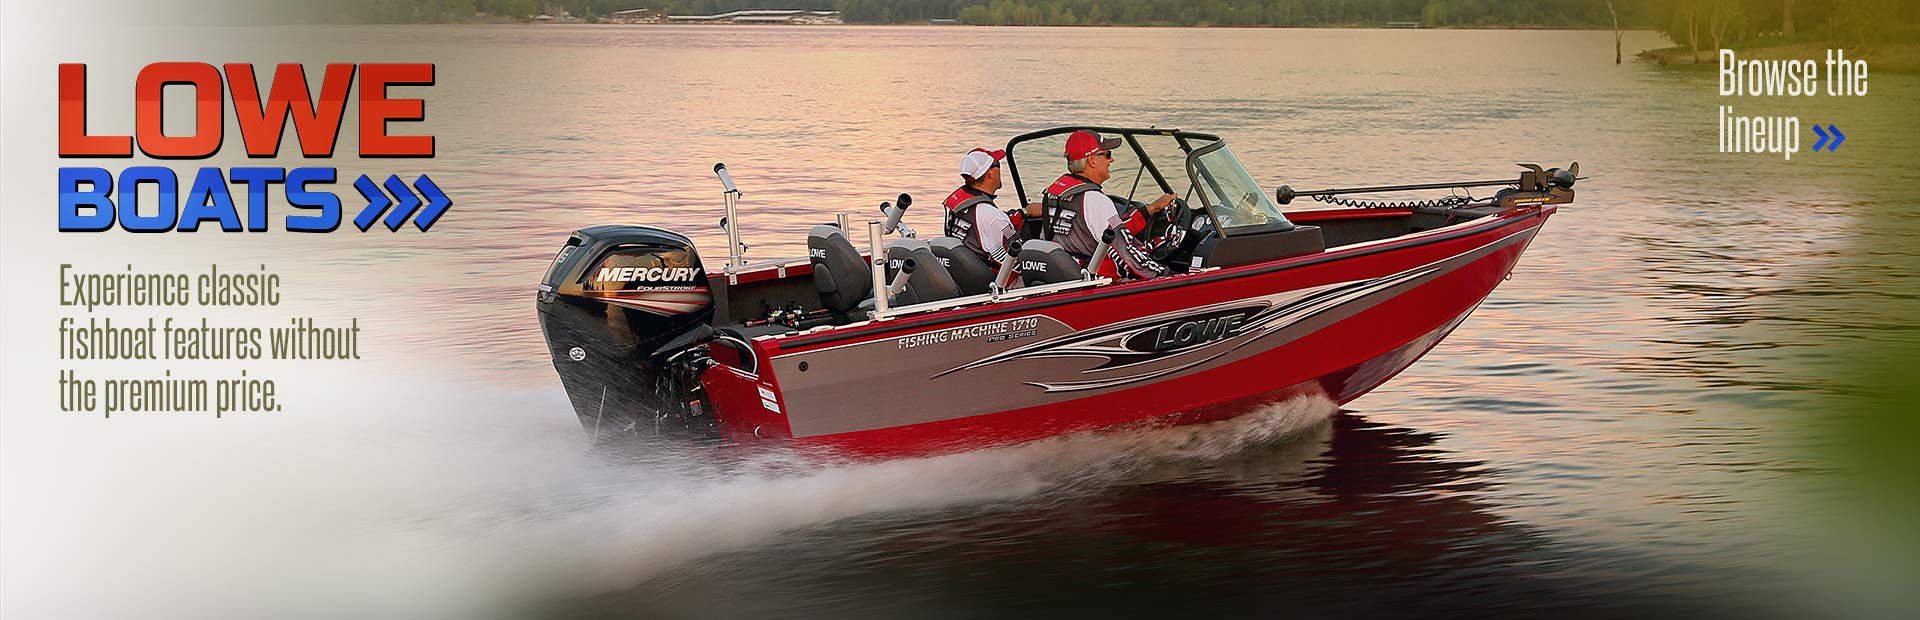 Click here to browse Lowe boats.